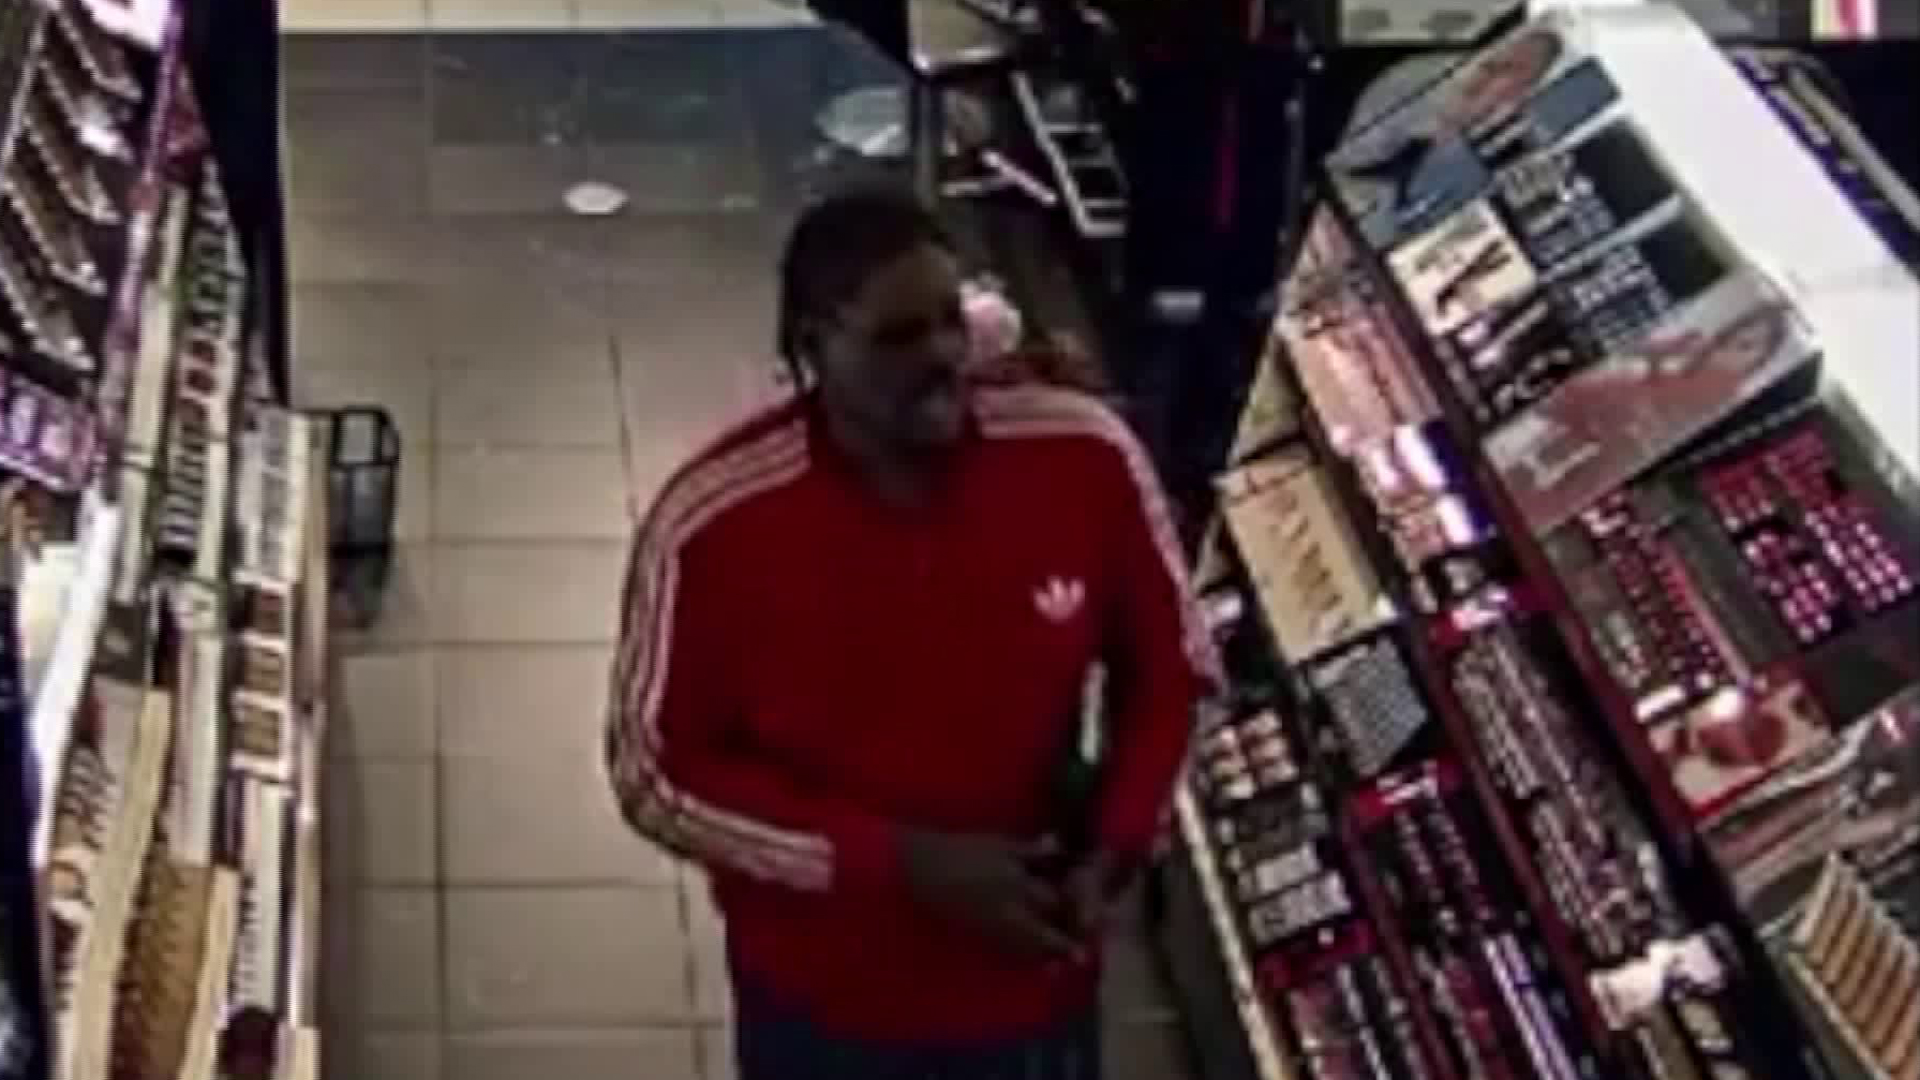 L.A. police released this surveillance image of one of the suspected thieves targeting high-end beauty stores.